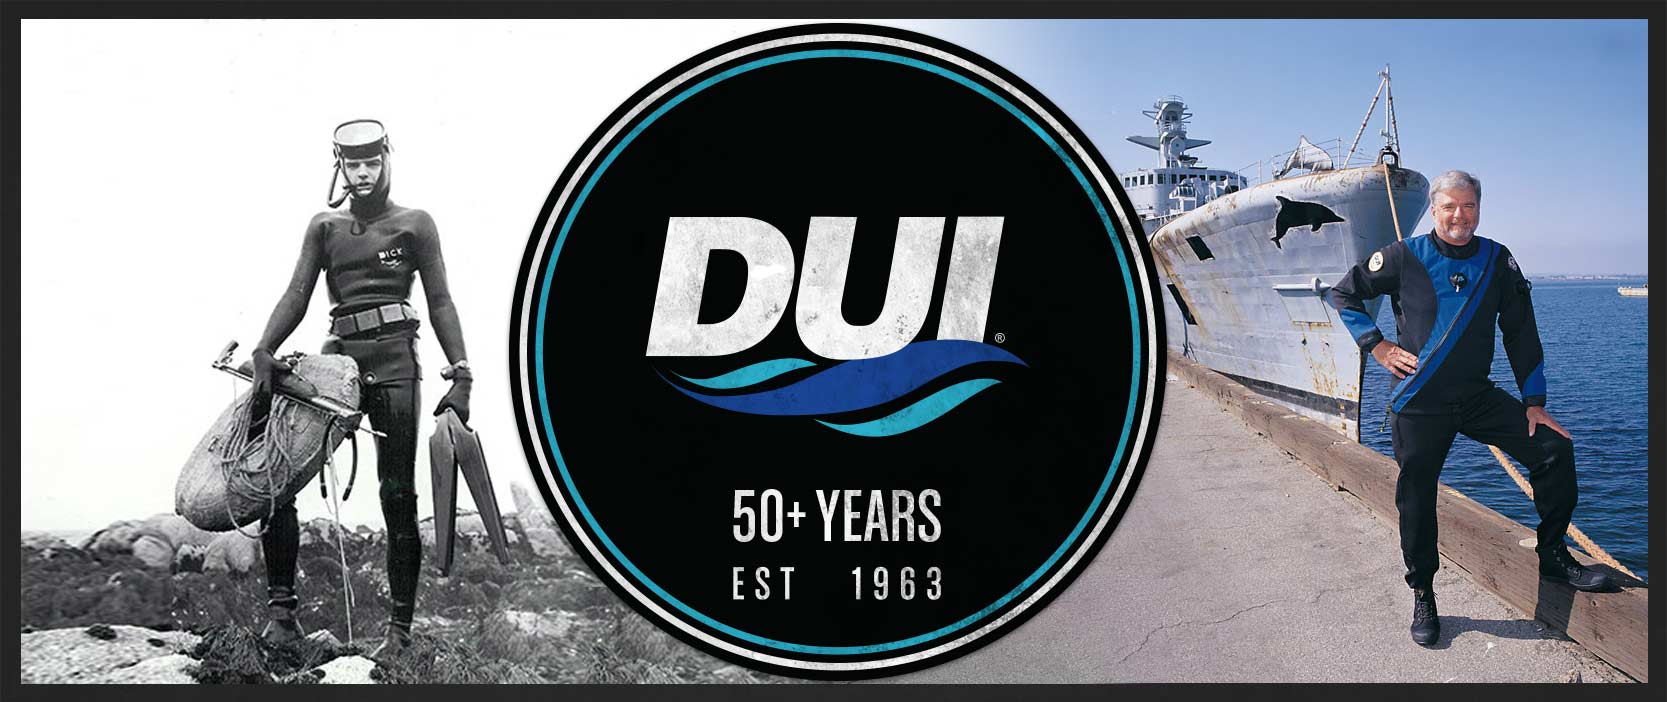 DUI | Diving Unlimited International - Diving Drysuits and Dive Gear More than 50 Years of Thermal Protection Diving Experience